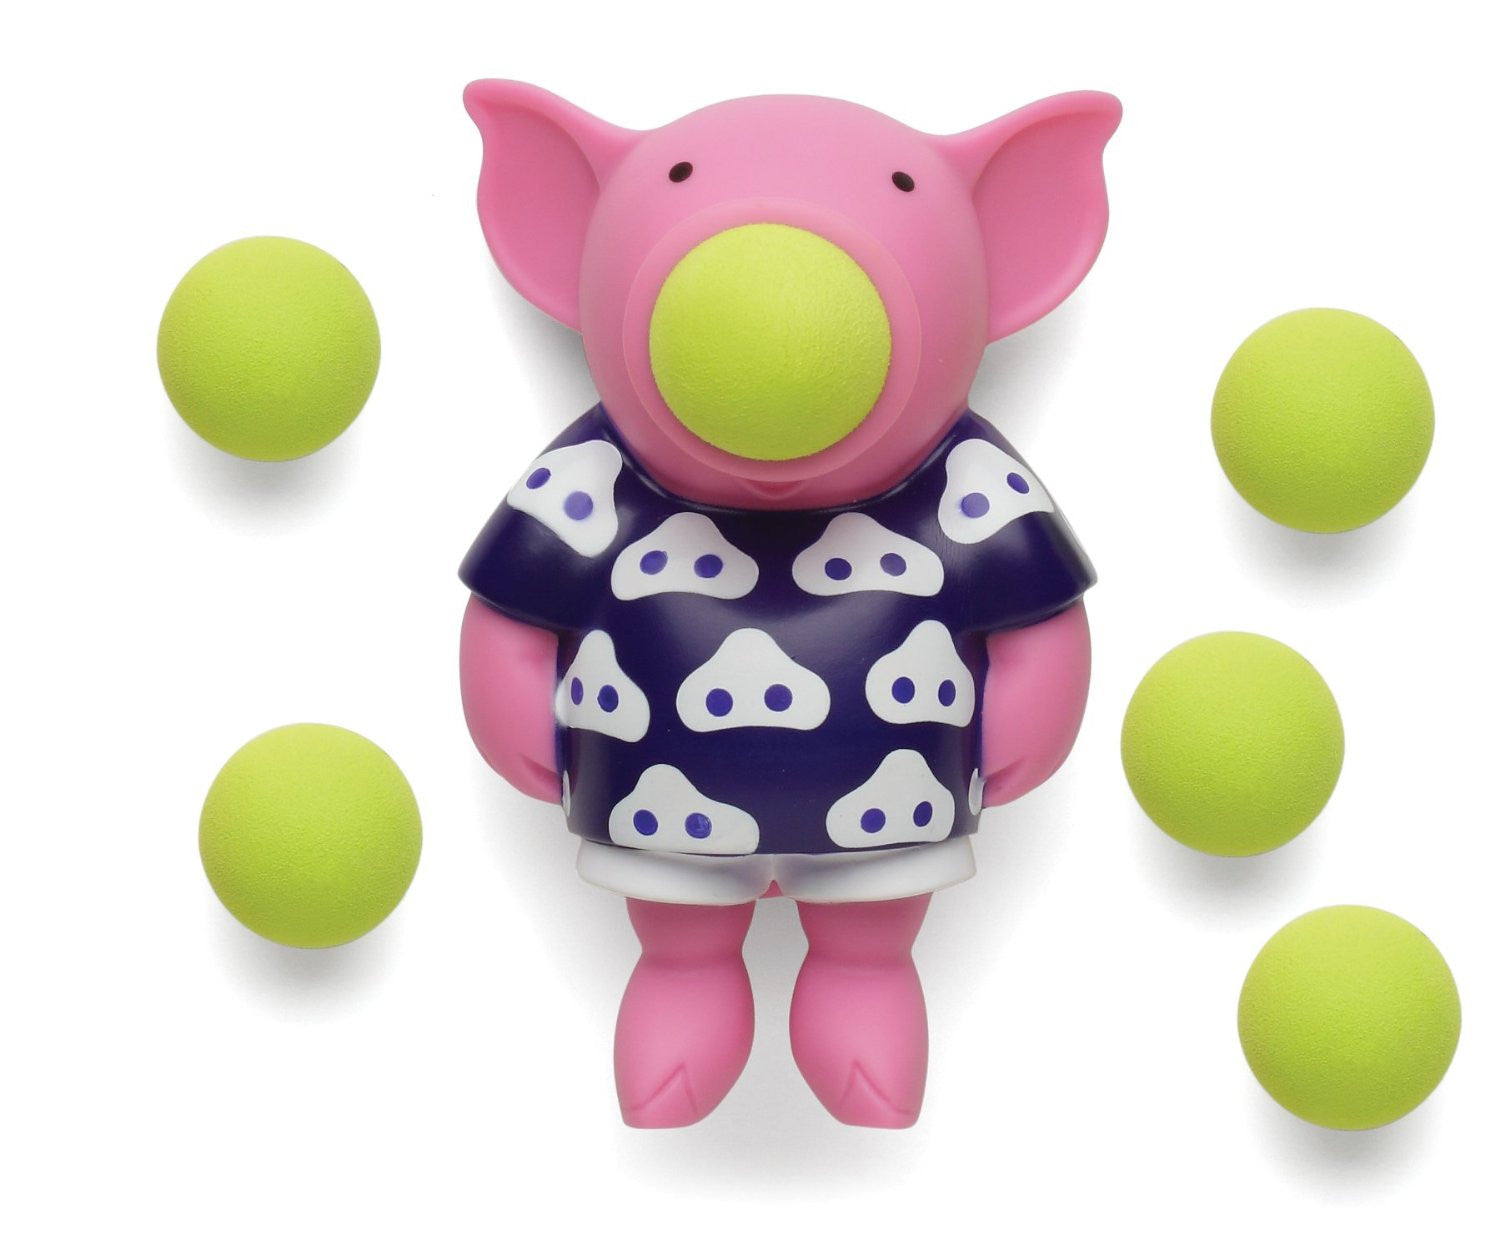 Pig Popper Pig Shaped Foam Ball Toy Shooter with 6 Foam Balls - Off The Wall Toys and Gifts